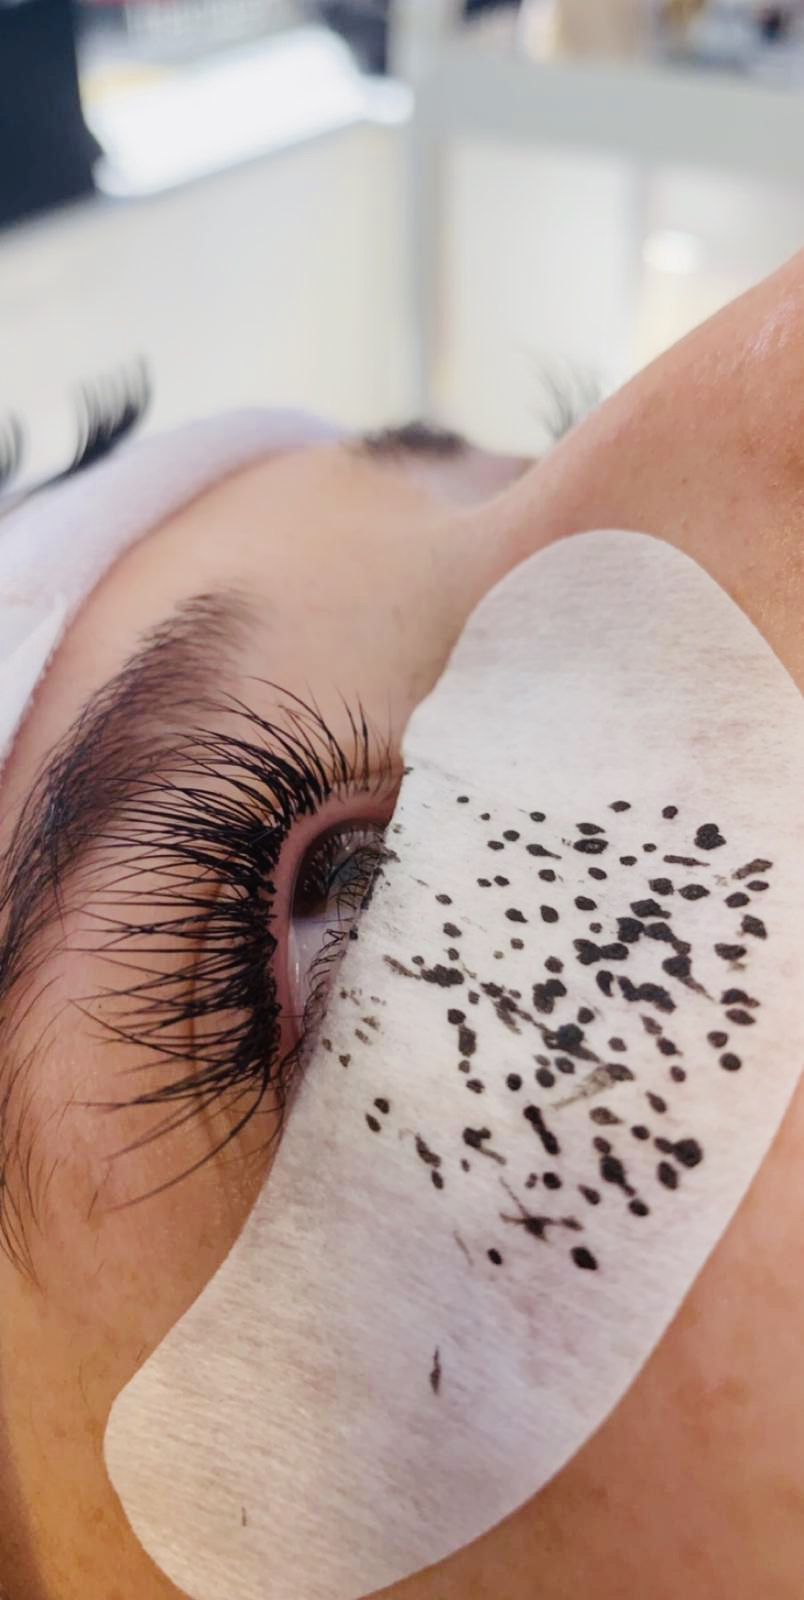 Classic individual lashes in the process